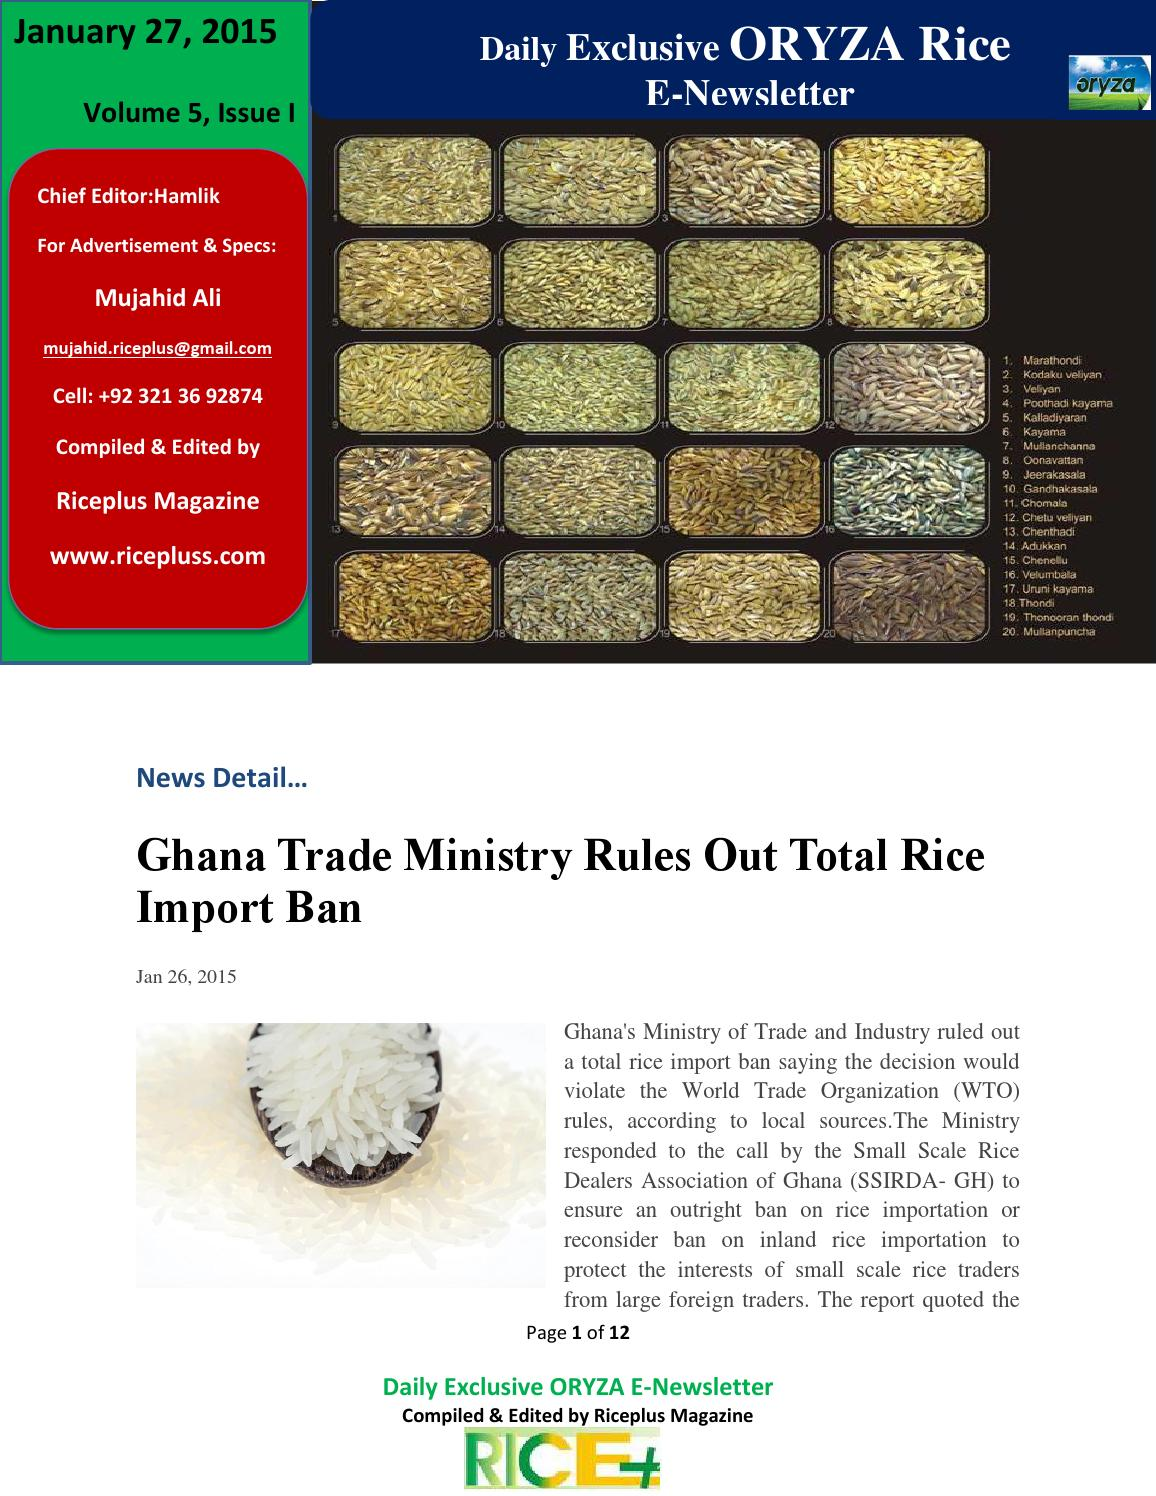 27th january,2015 daily exclusive oryza rice e newsletter by